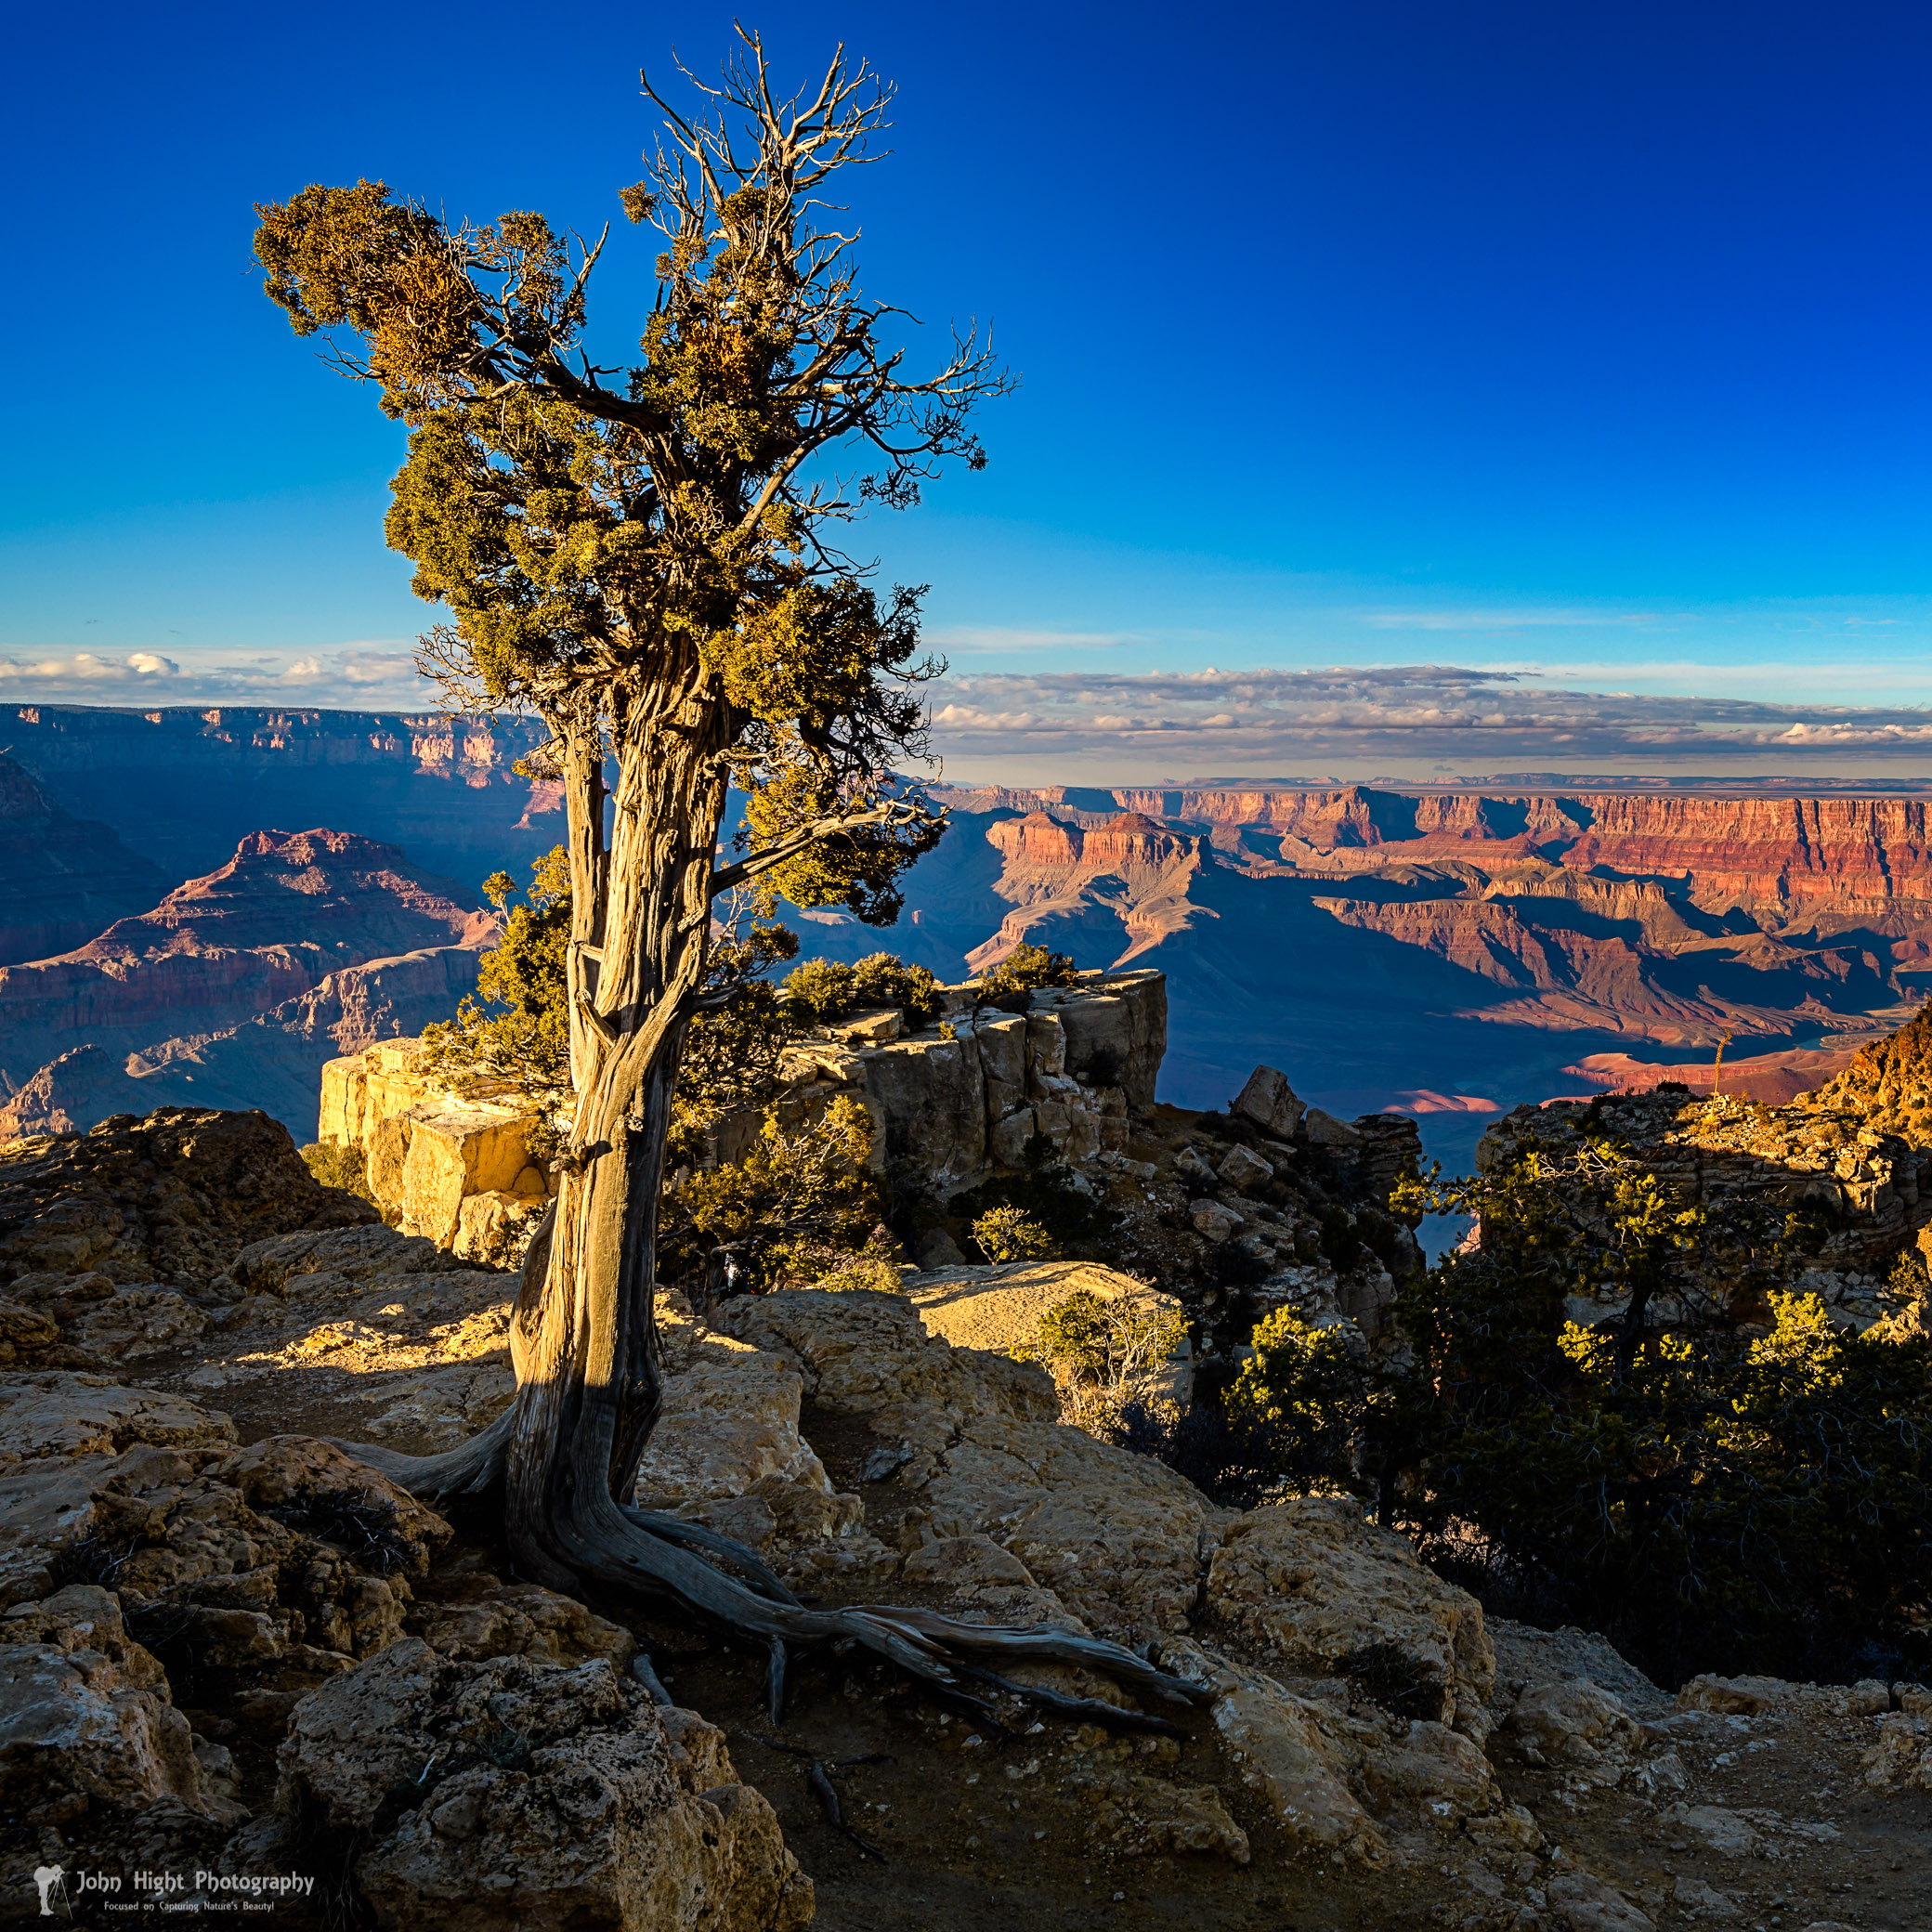 Golden Hour at Grand Canyon